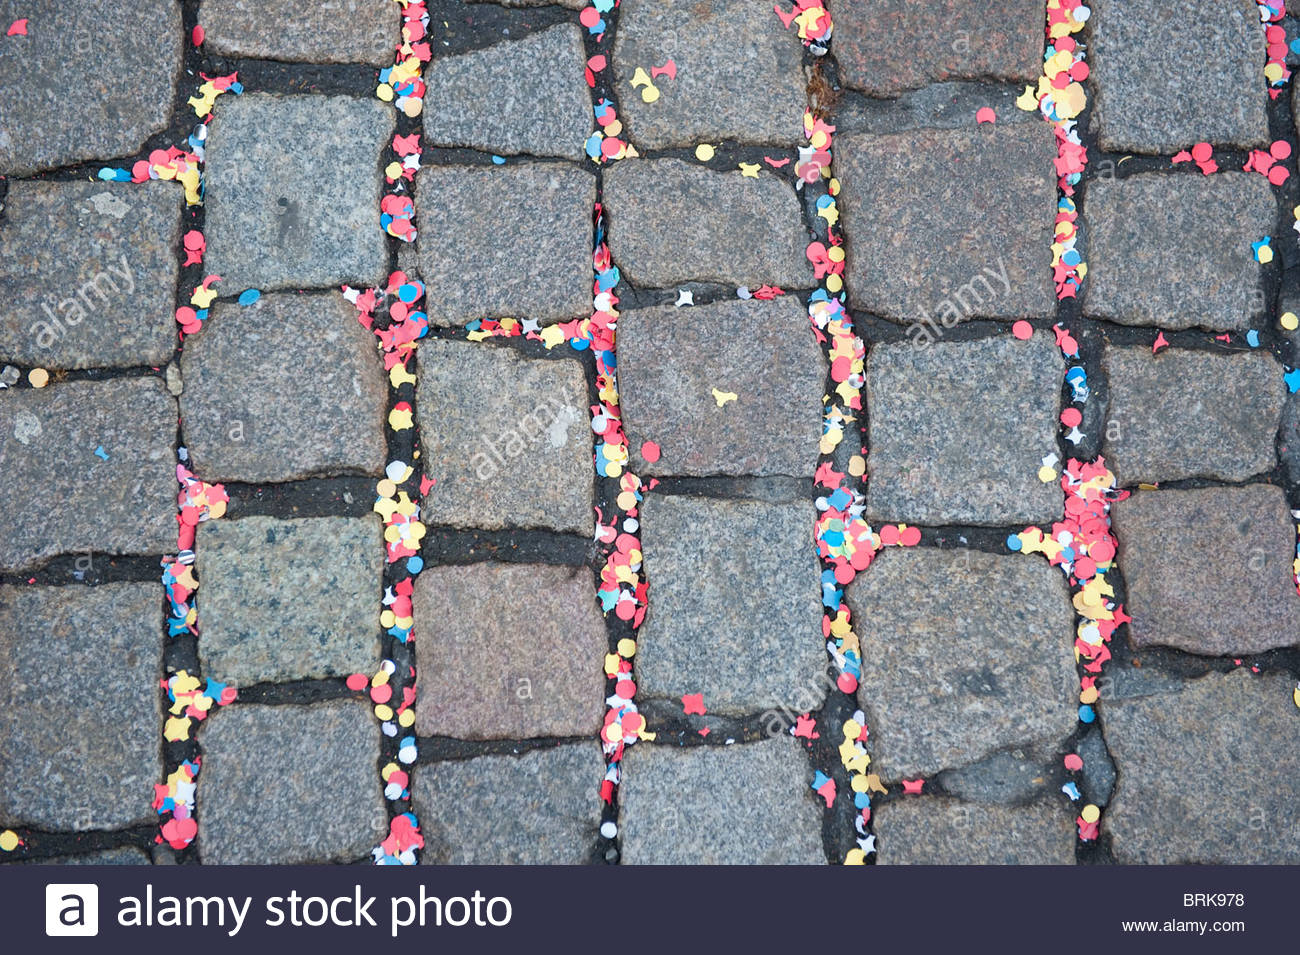 Confetti on a cobblestone street the morning after Carneval - Stock Image